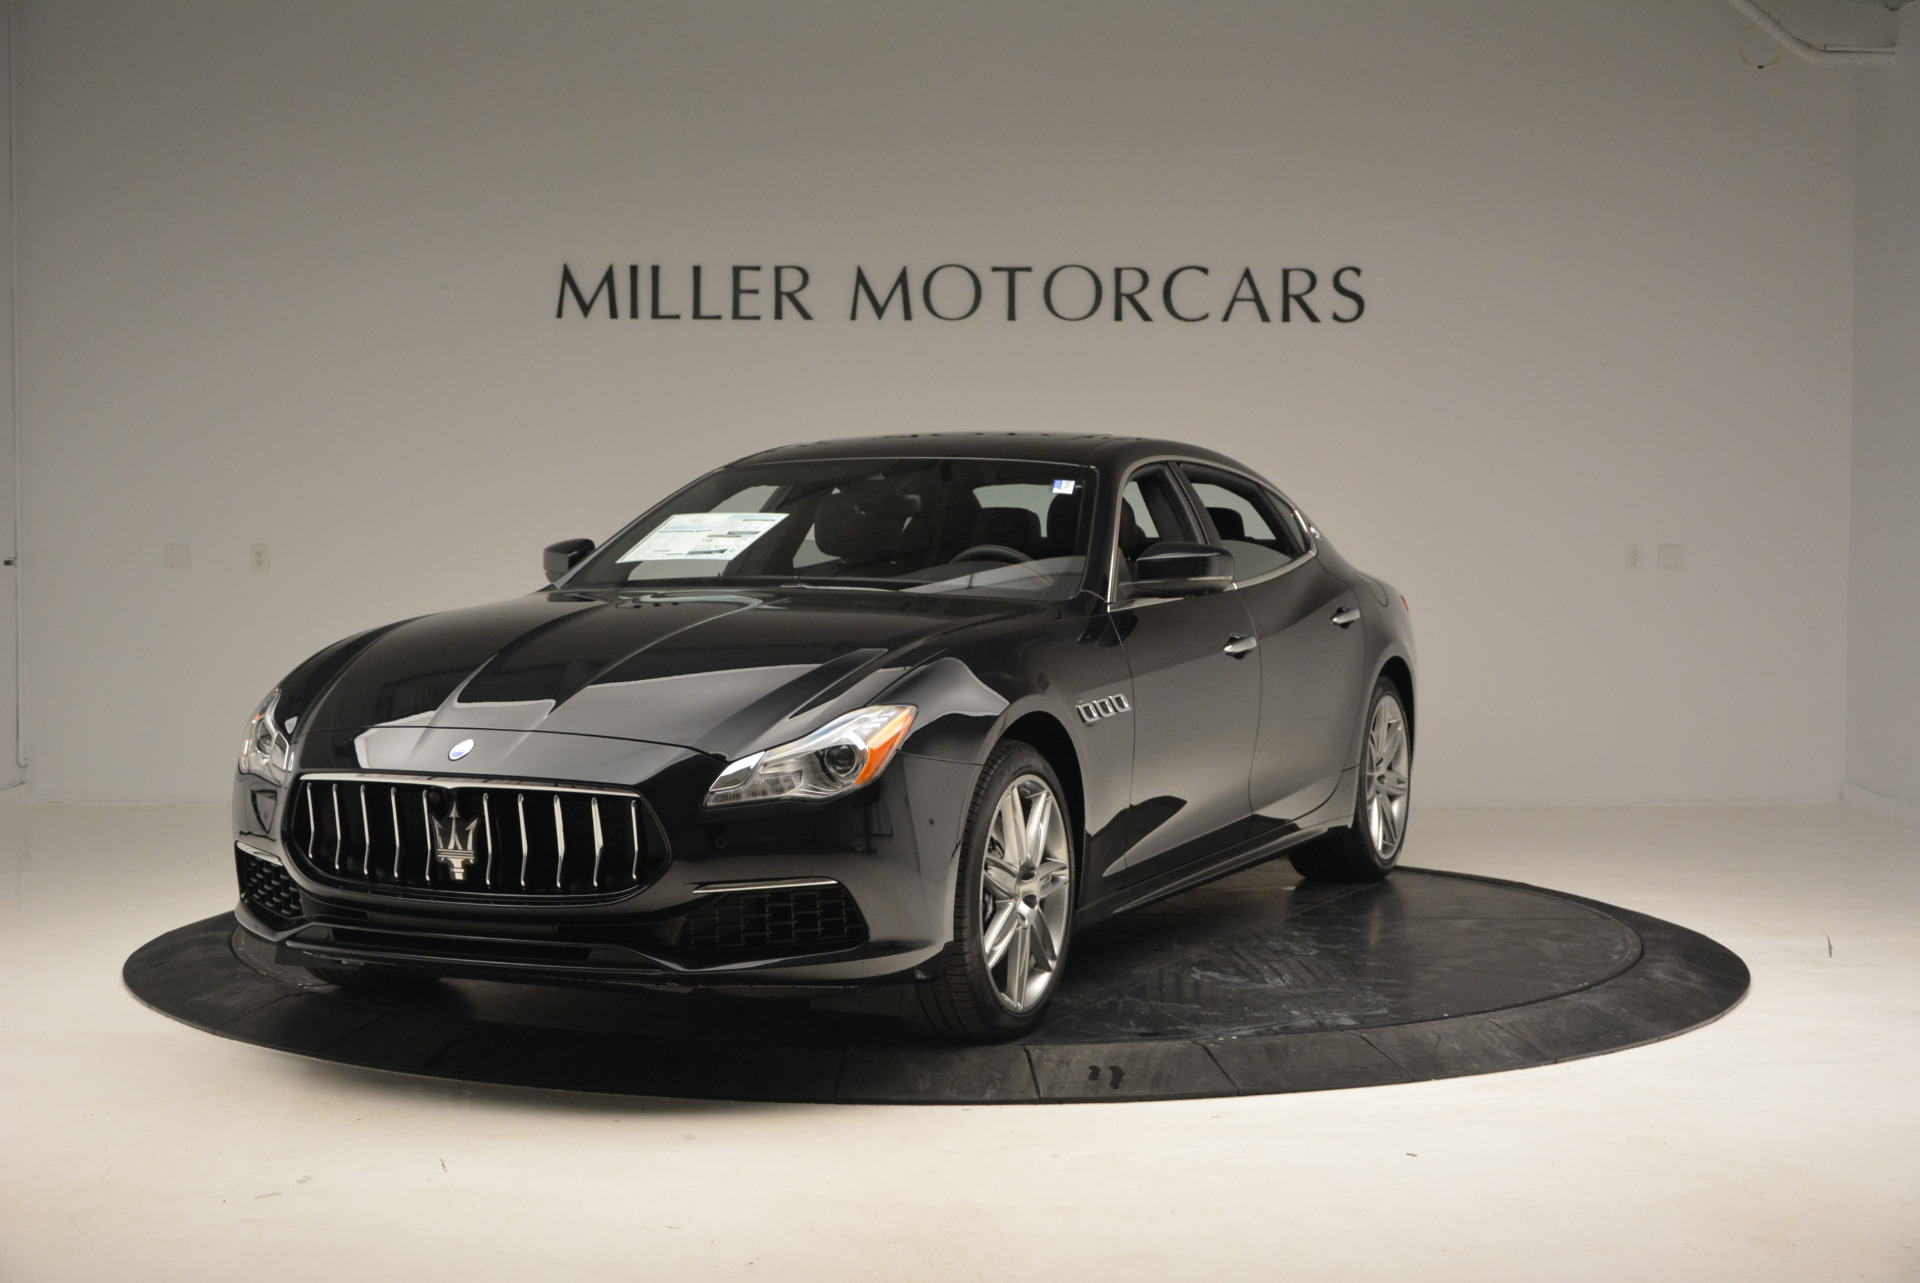 New 2017 Maserati Quattroporte S Q4 GranLusso For Sale In Greenwich, CT 793_main